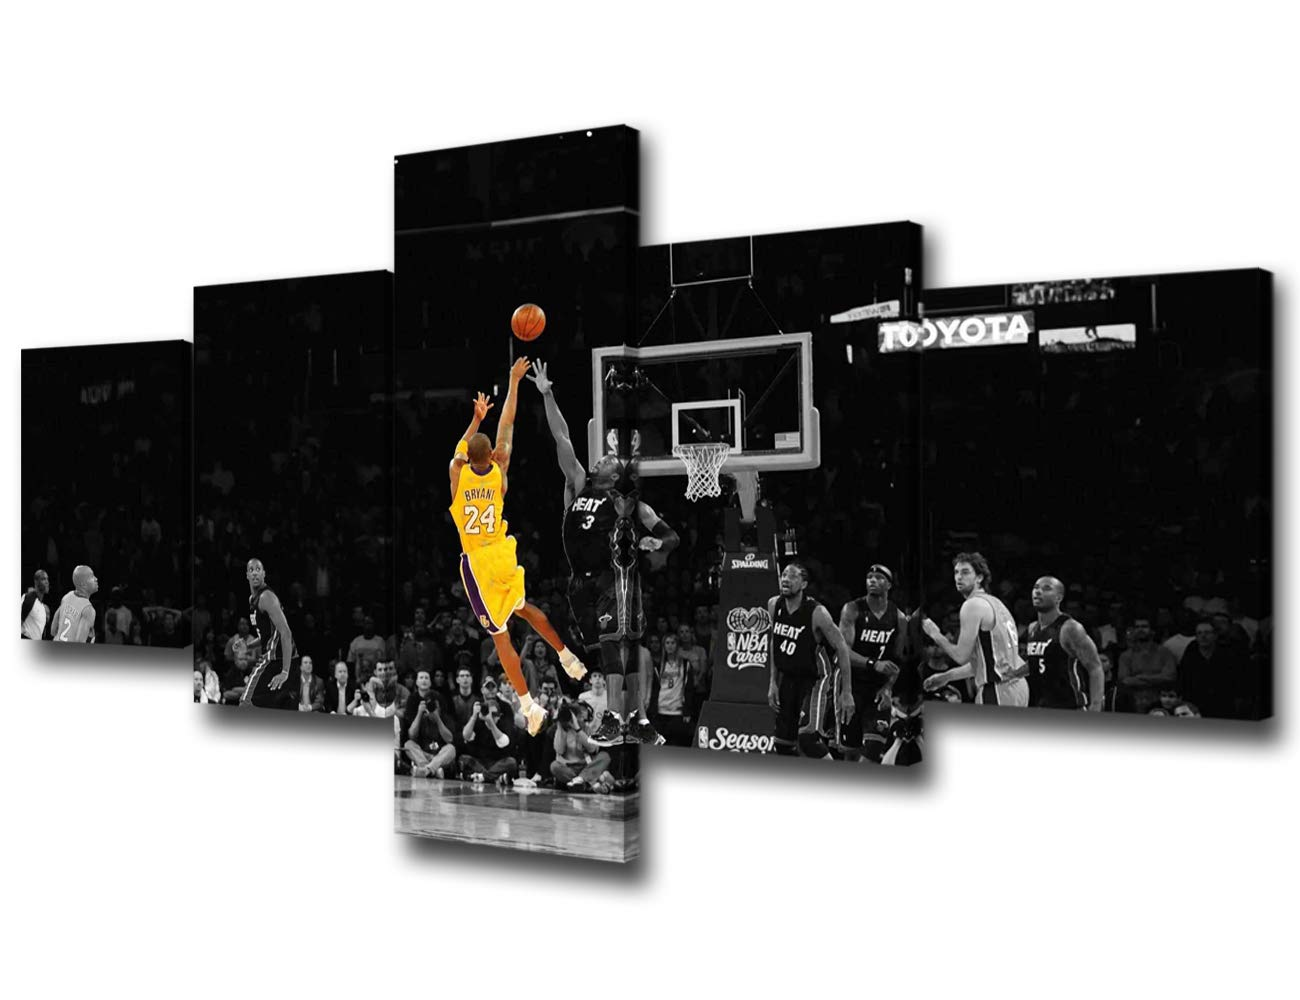 "Black and Yellow Background NBA Match Wall Art Painting Basketball Player Kobe Bryant of Lakers at Staples Center in Los Angeles Pictures Print On Canvas for Home Decoration Ready to Hang -50""W x 24""H"